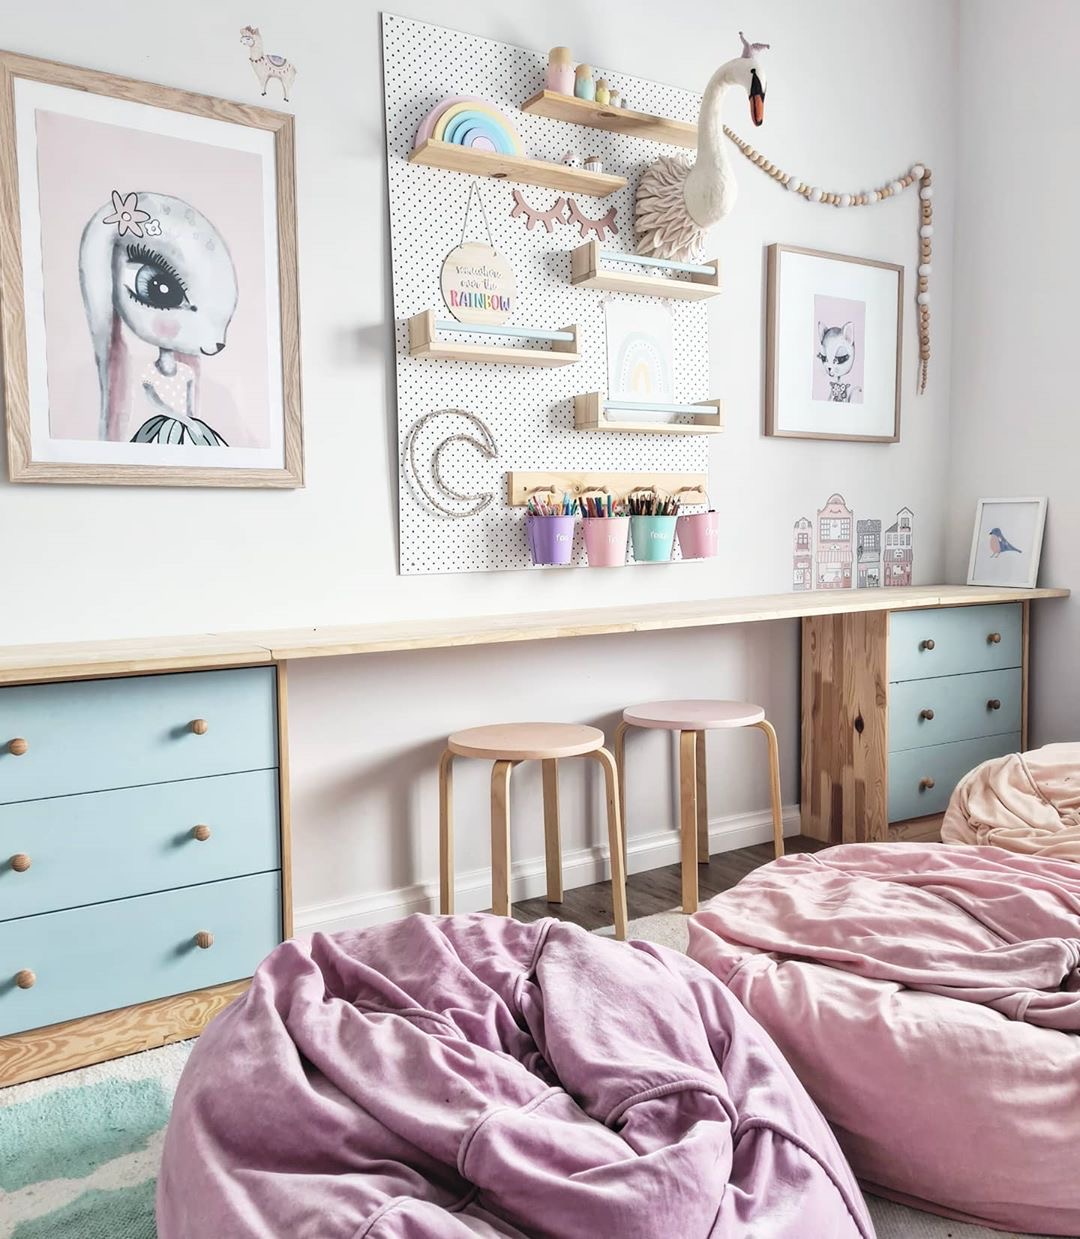 Image of a bedroom from @three.little.poppies